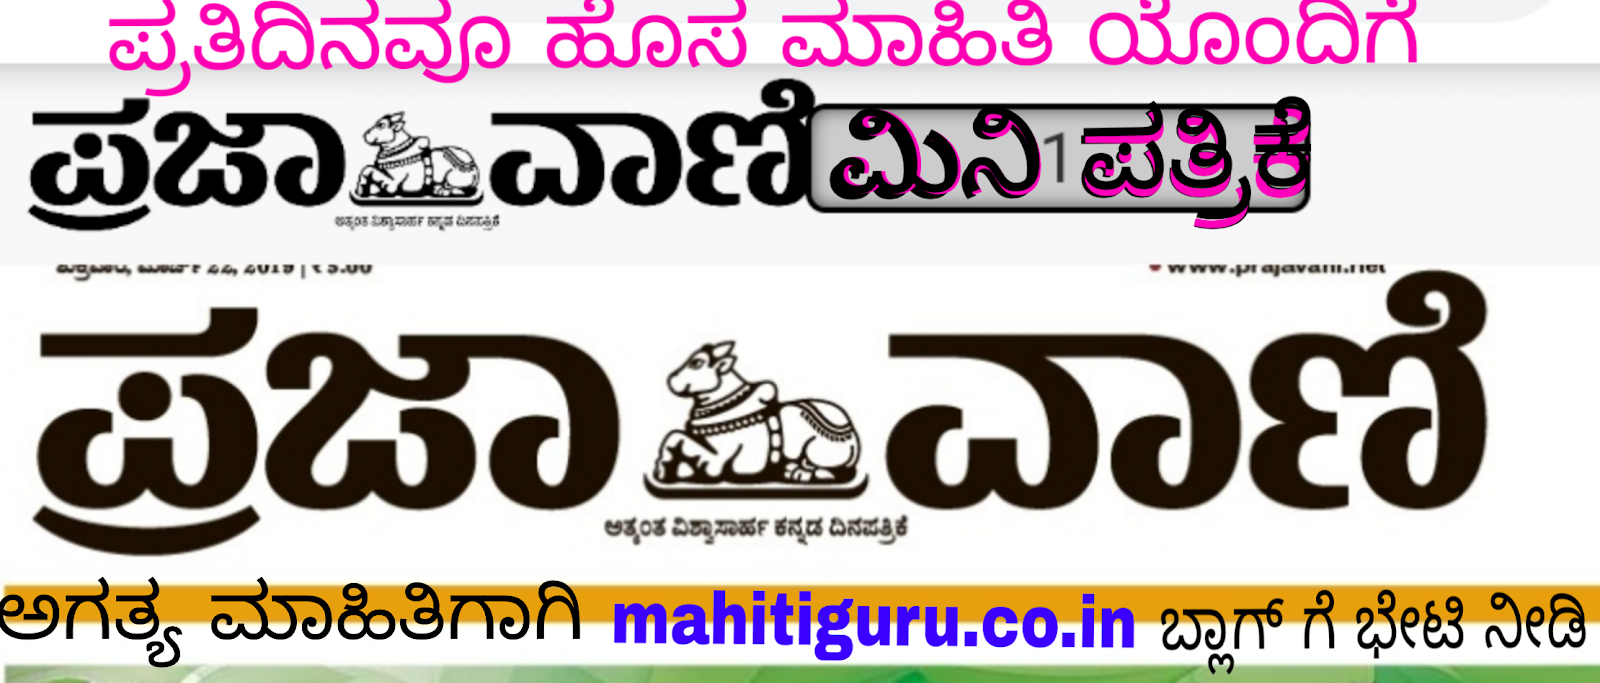 19-11-19 Today mini prajavani